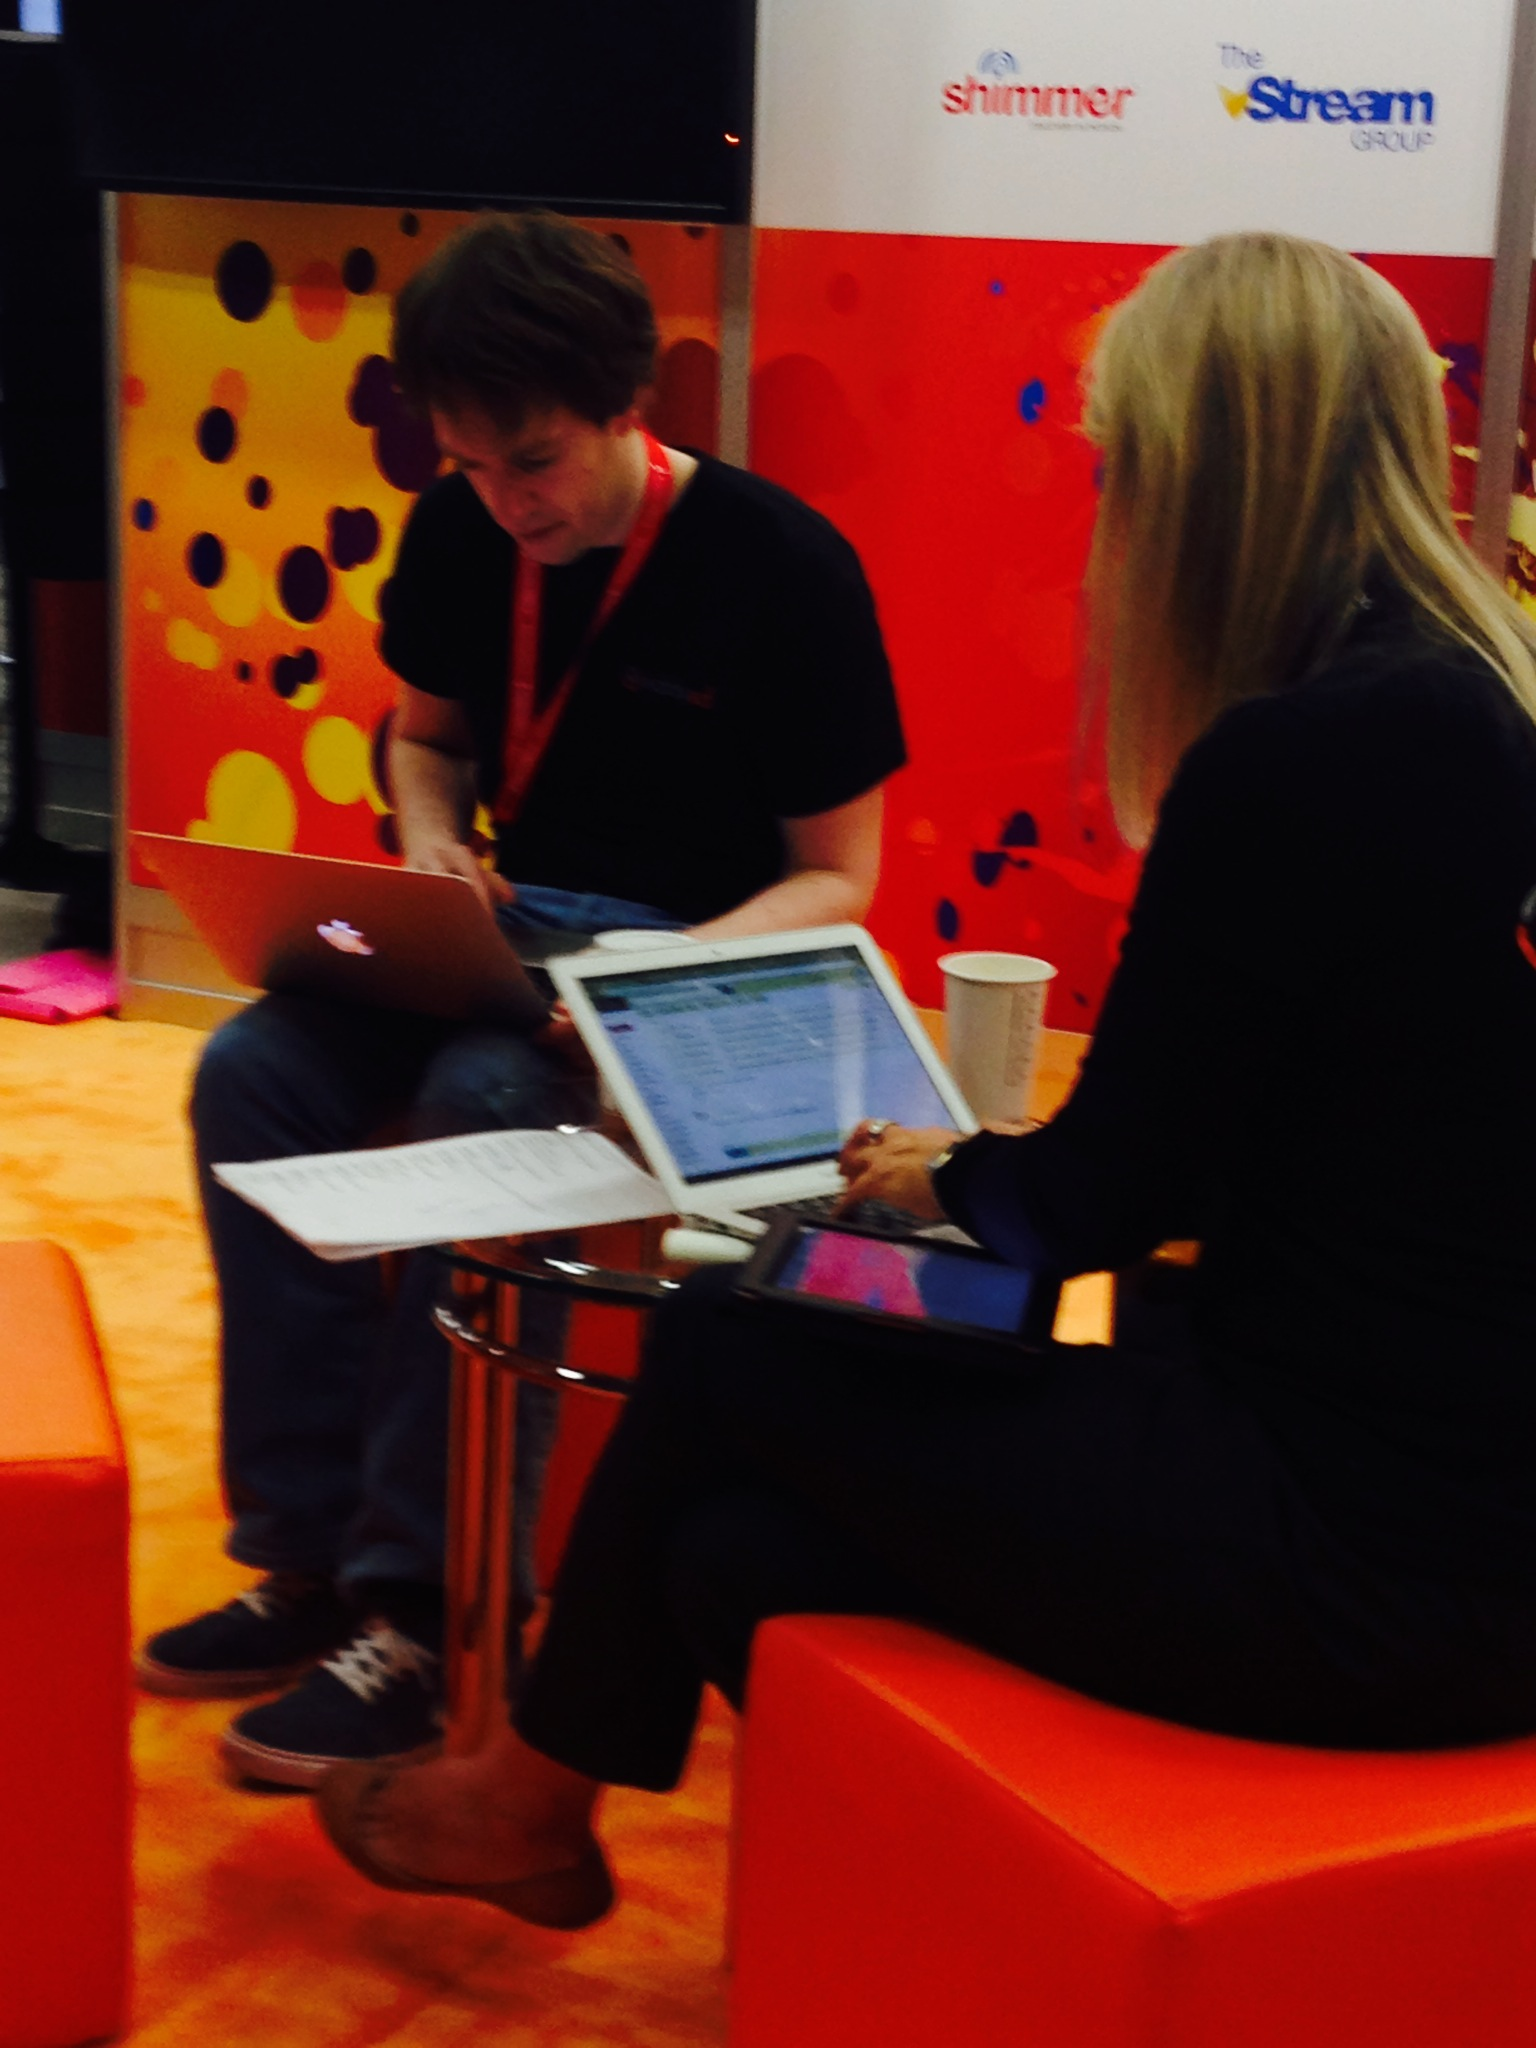 CEO Grainne Barron and one of our software engineers Kevin getting some work done